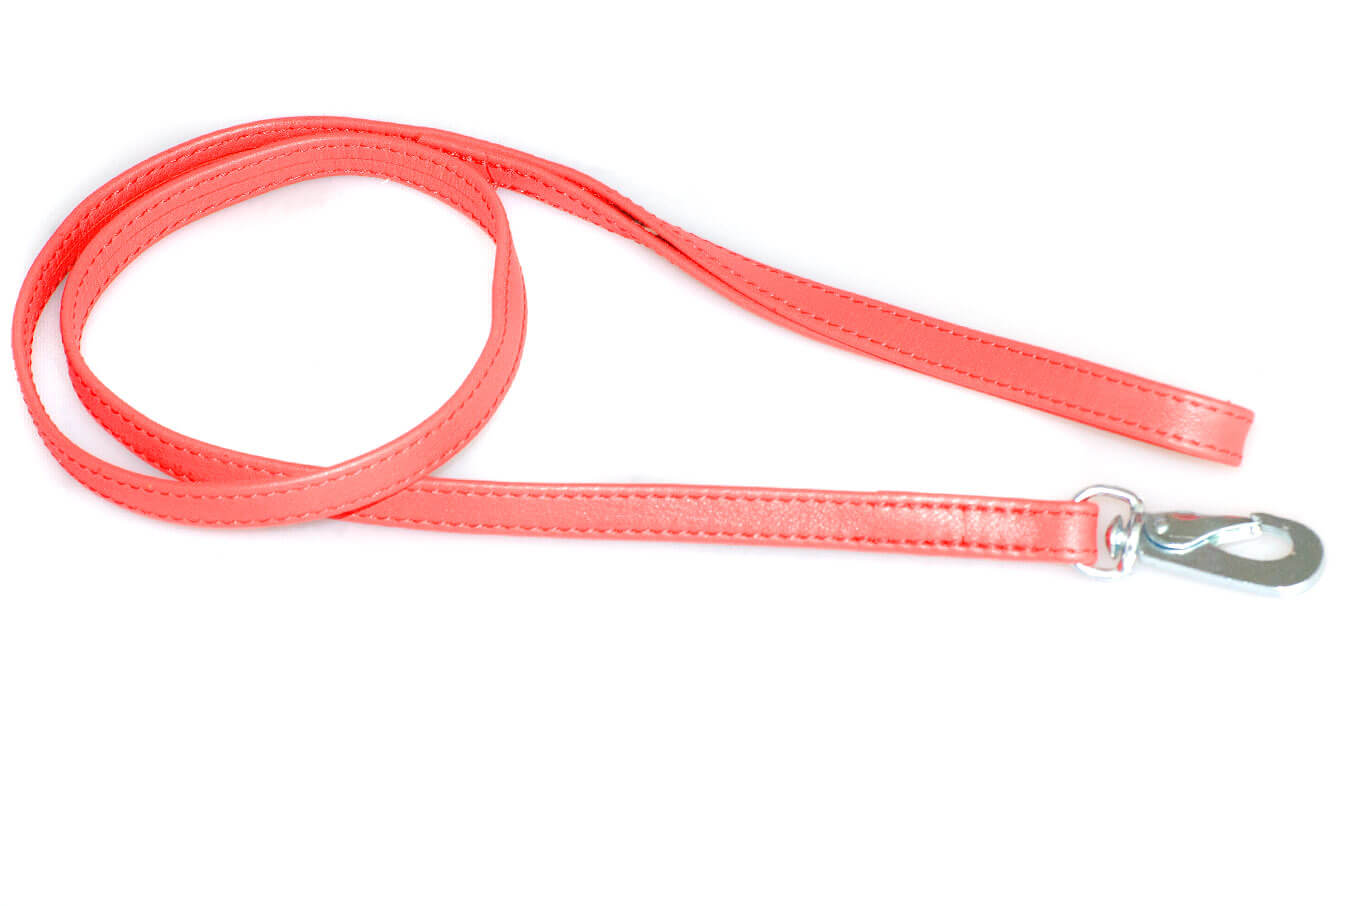 Red nappa leather stitched dog show lead